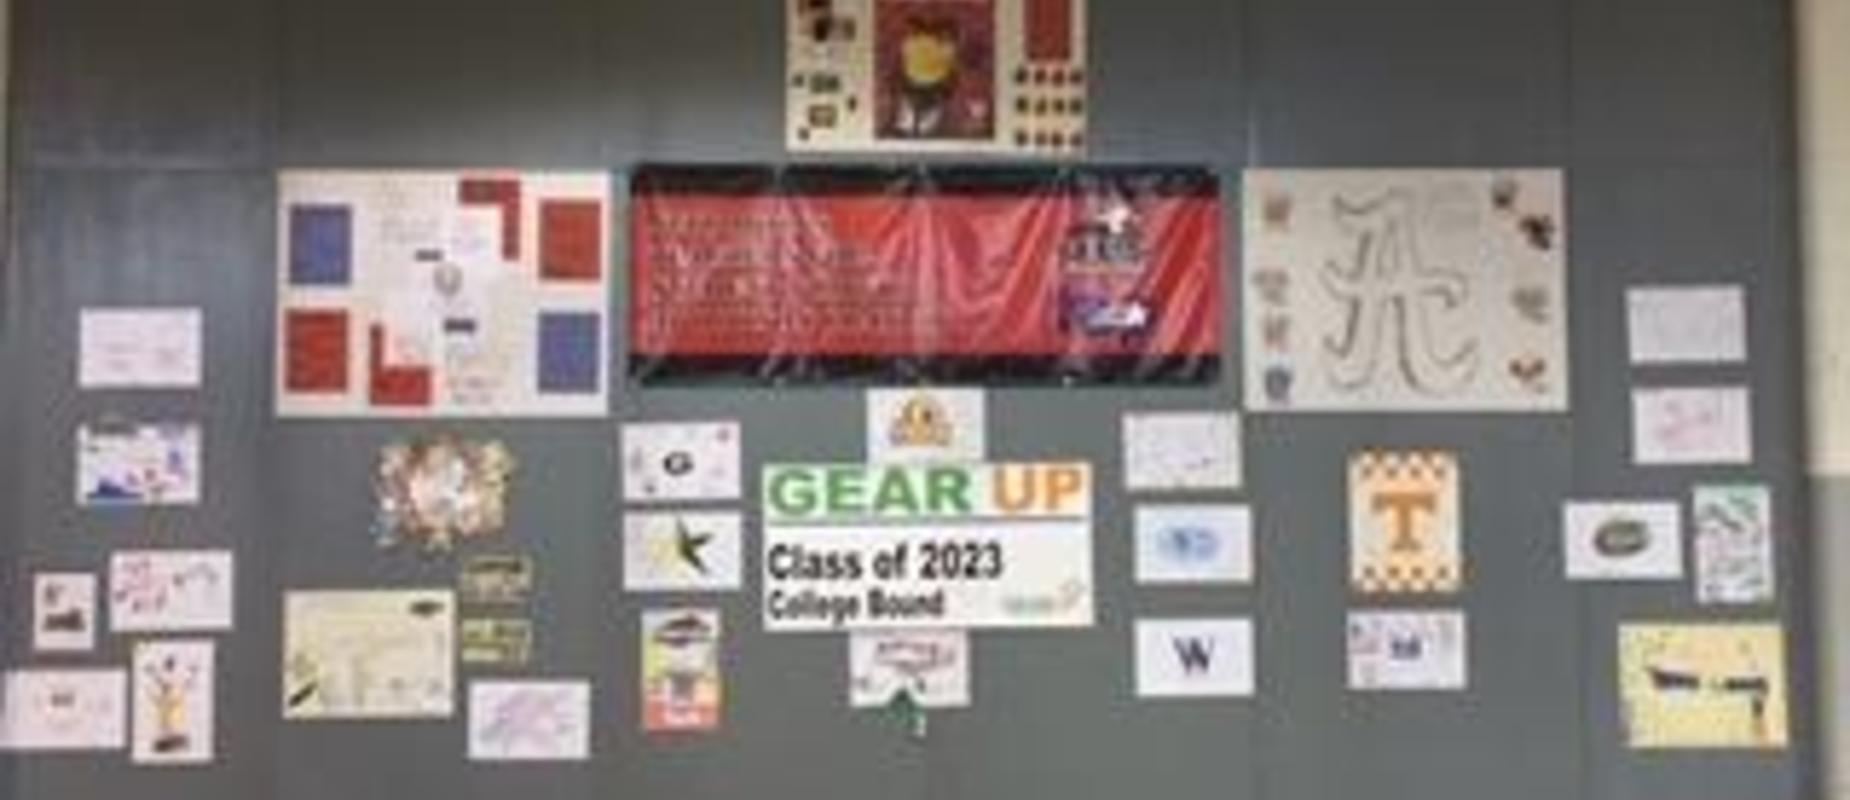 GEAR UP wall